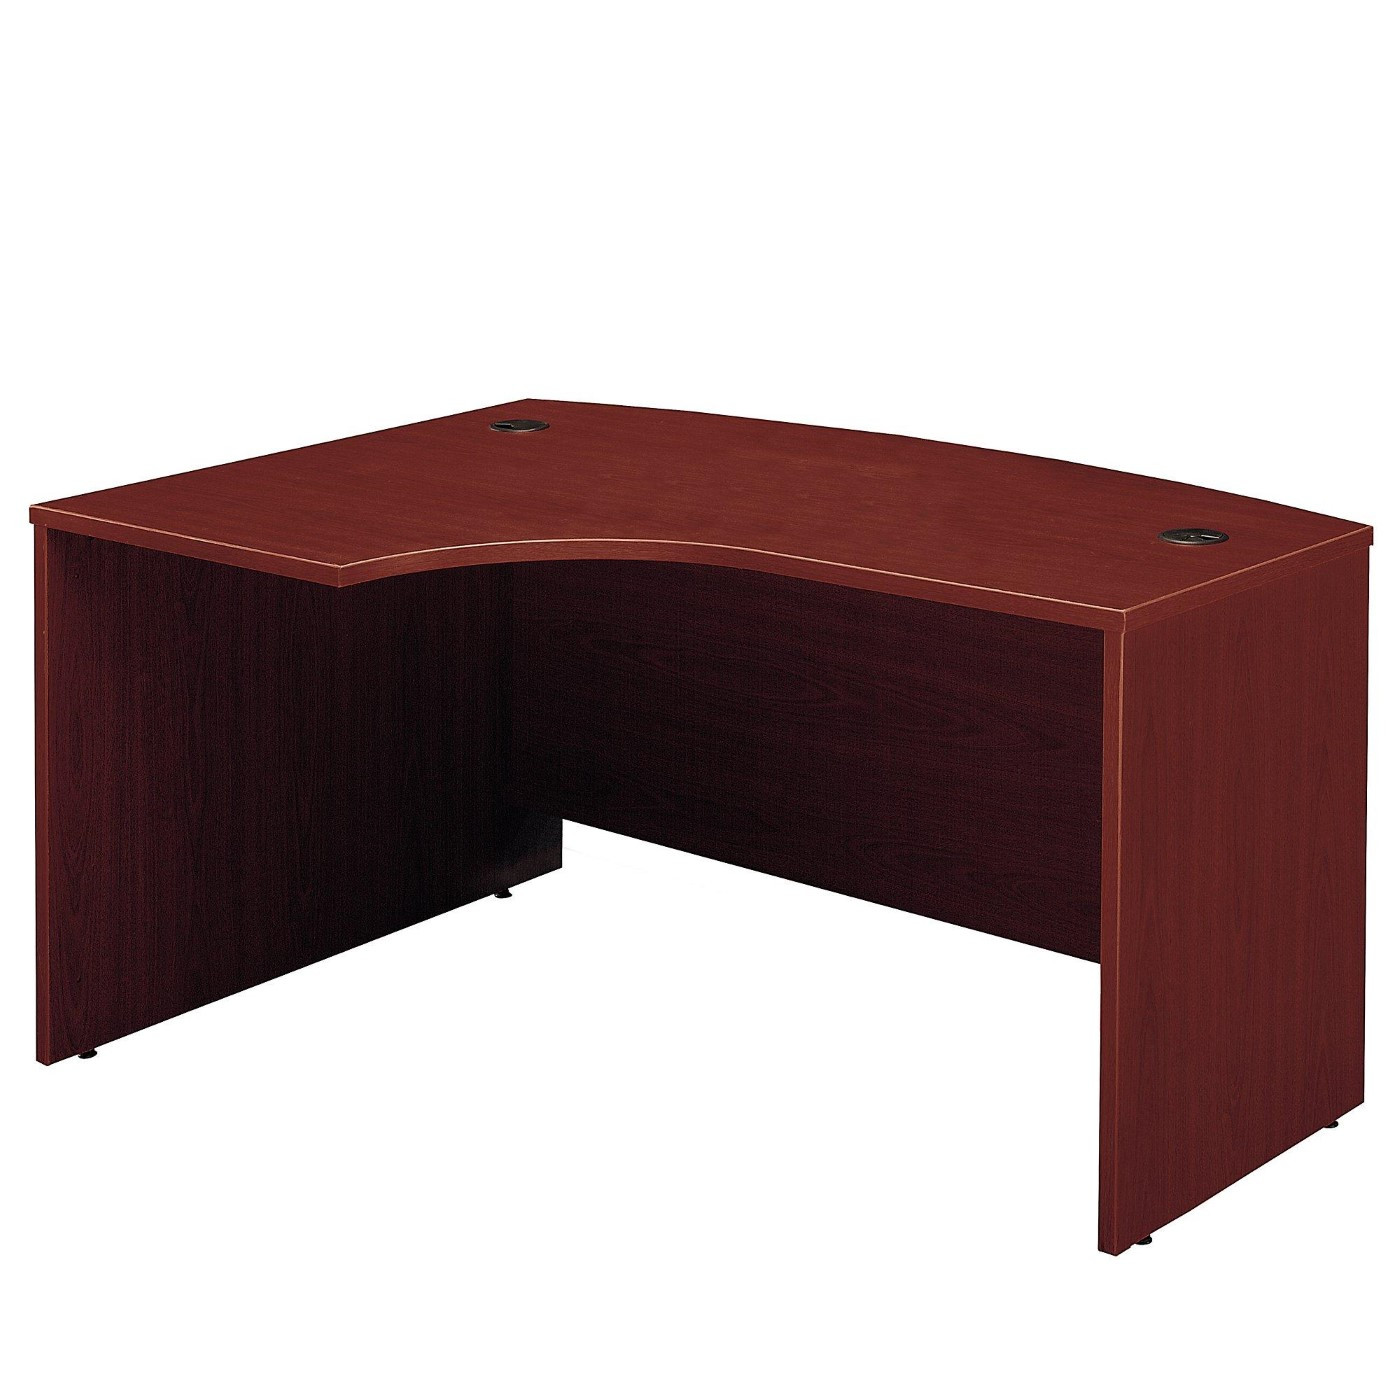 <font color=#c60><b>BUSH BUSINESS FURNITURE SERIES C 60W X 43D RIGHT HANDED L BOW DESK. FREE SHIPPING</font></b></font></b>